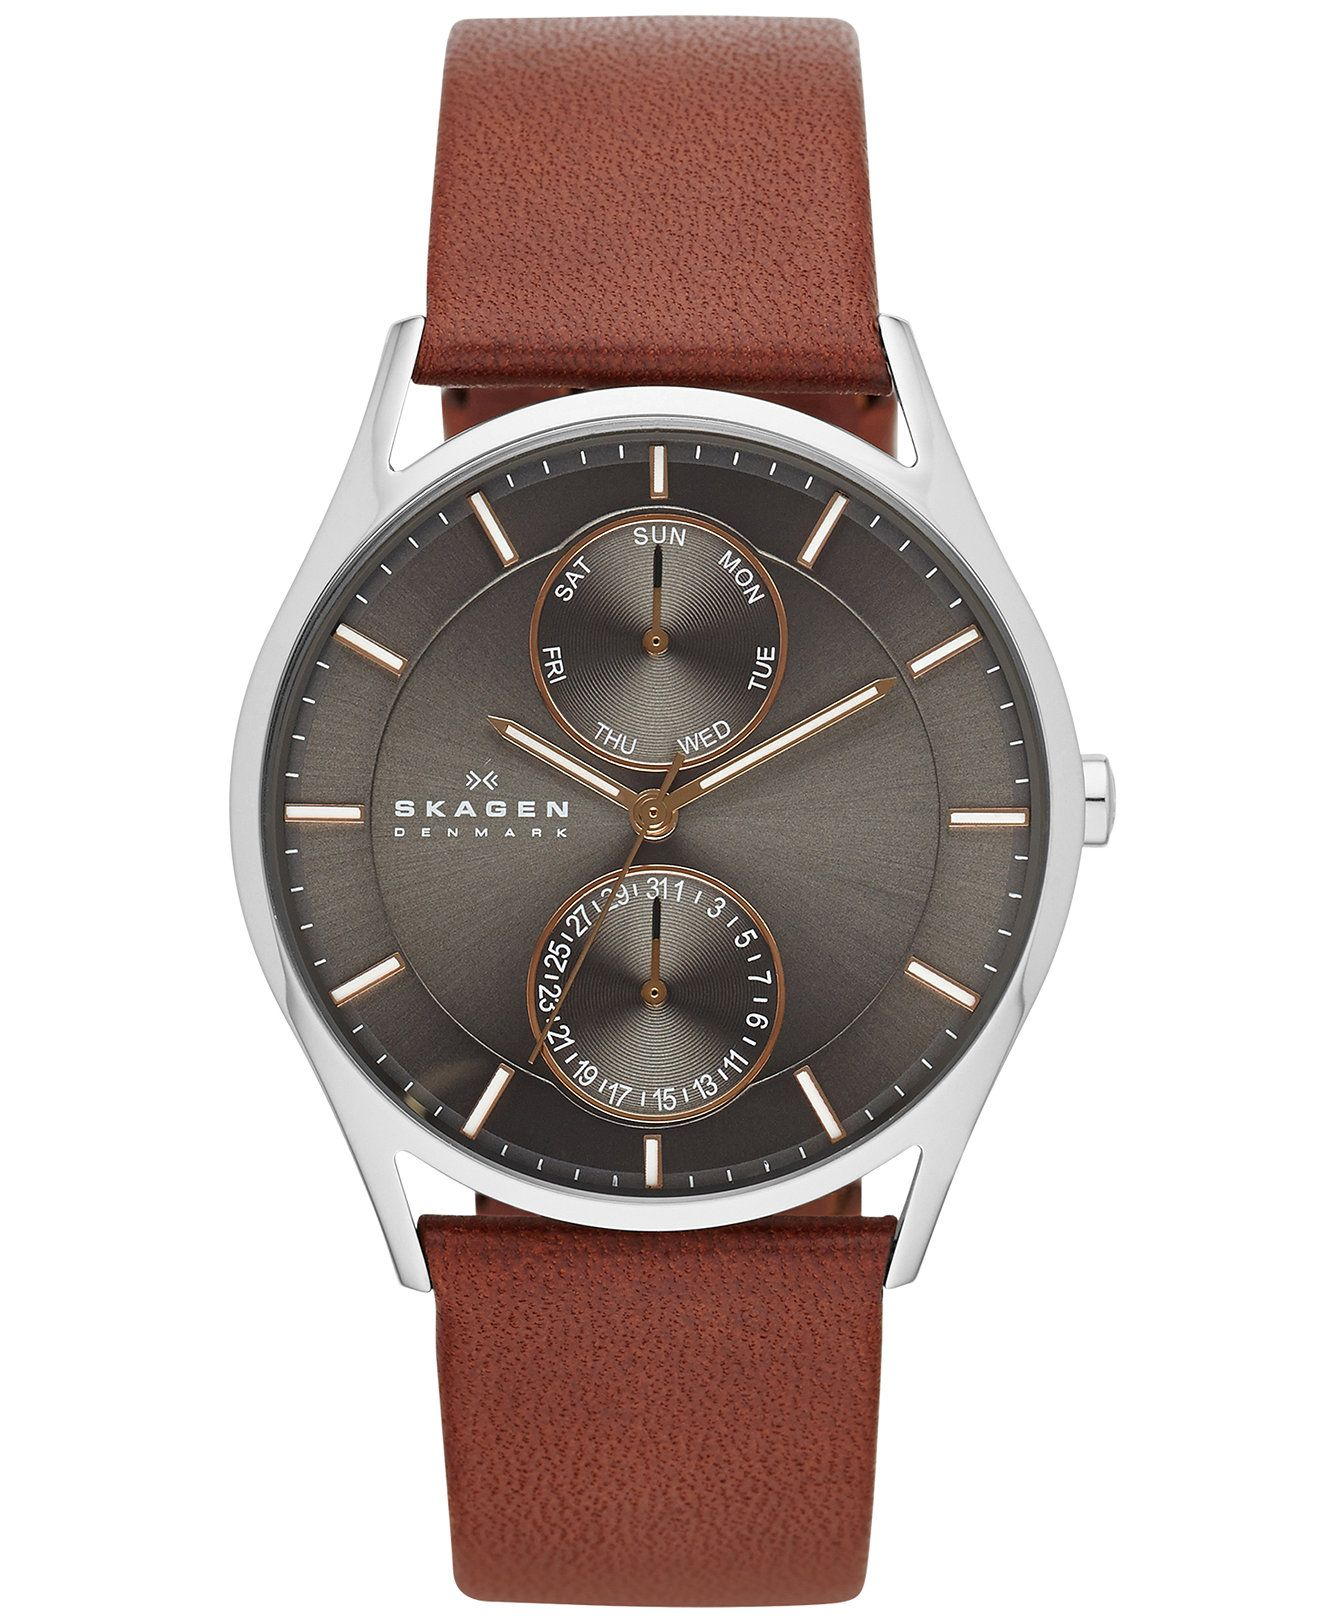 56cb0539e31b3e A multifunctional design in classic brown leather from Skagen s watch  collection.